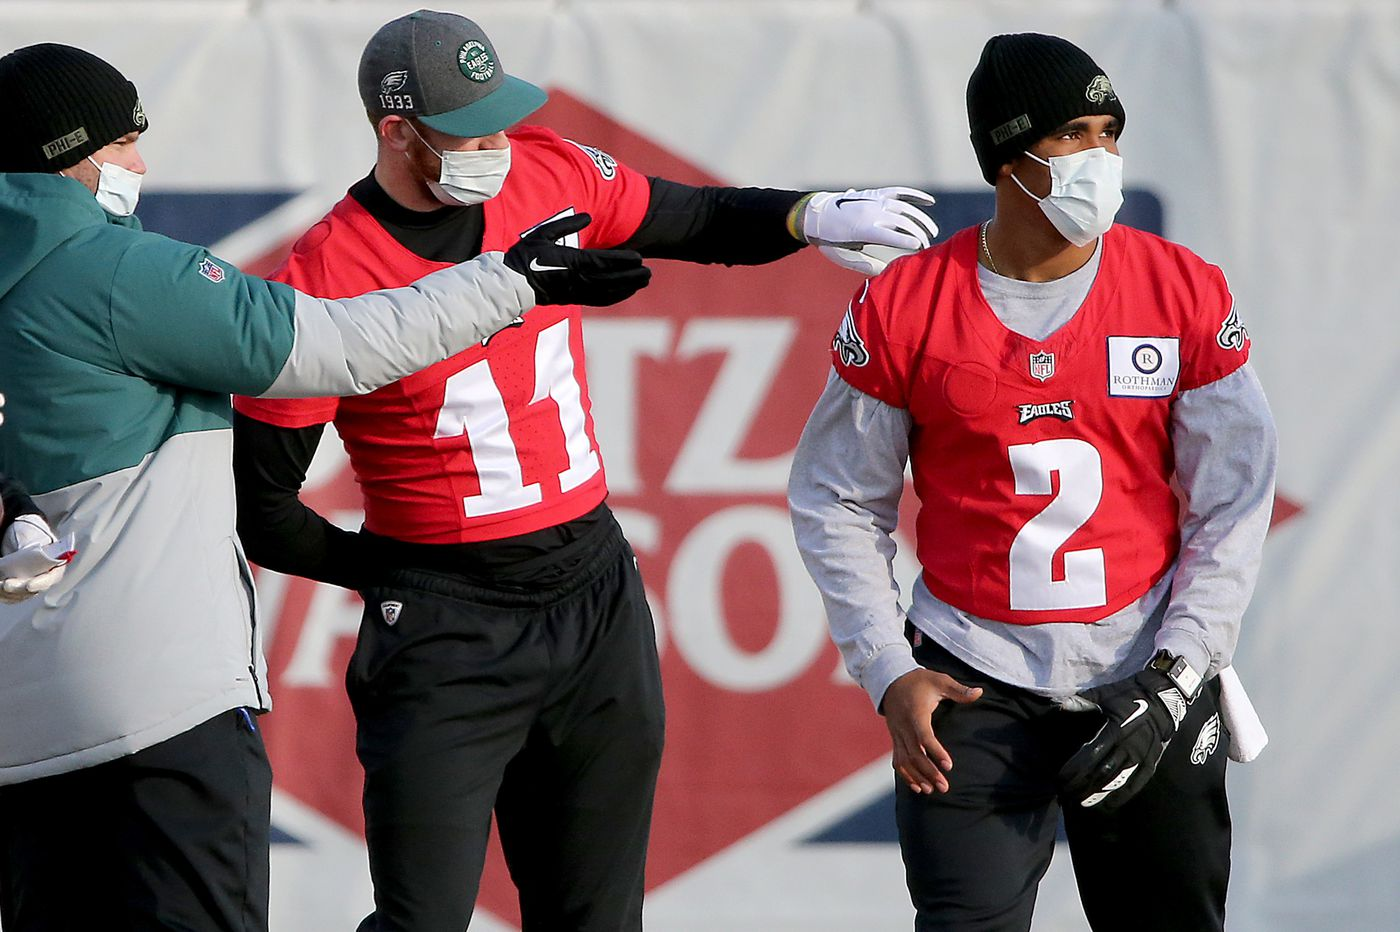 How safe is Carson Wentz's hold on Eagles' starting QB job? Joe Banner weighs in on this season and next